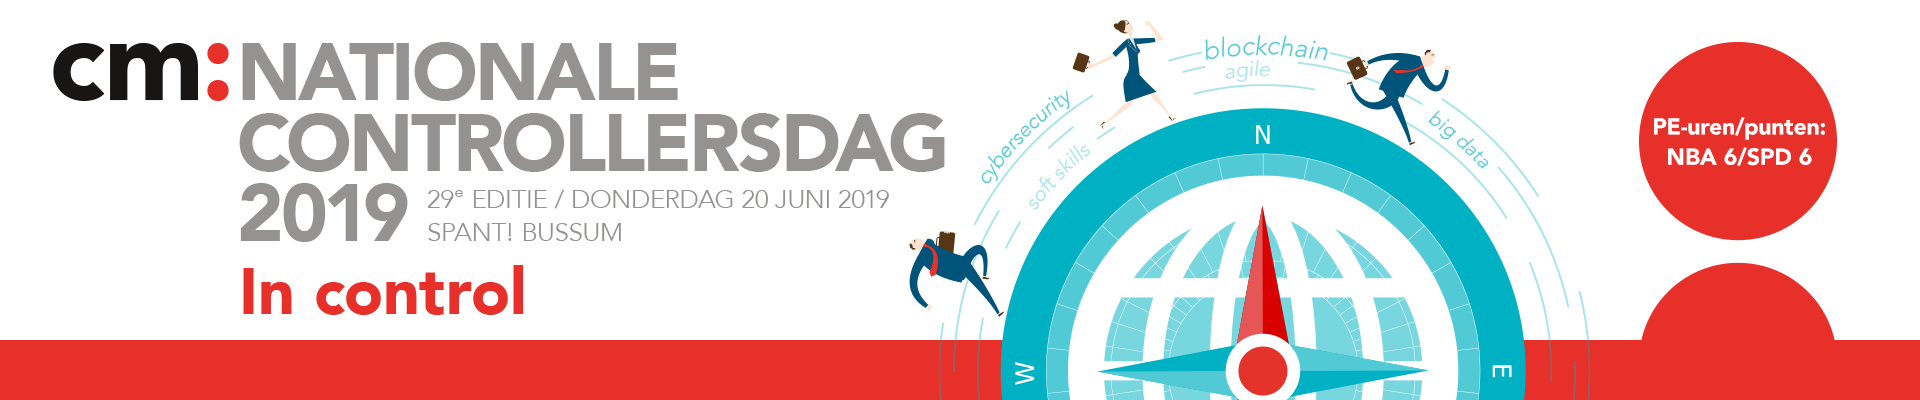 Nationale Controllersdag 2019